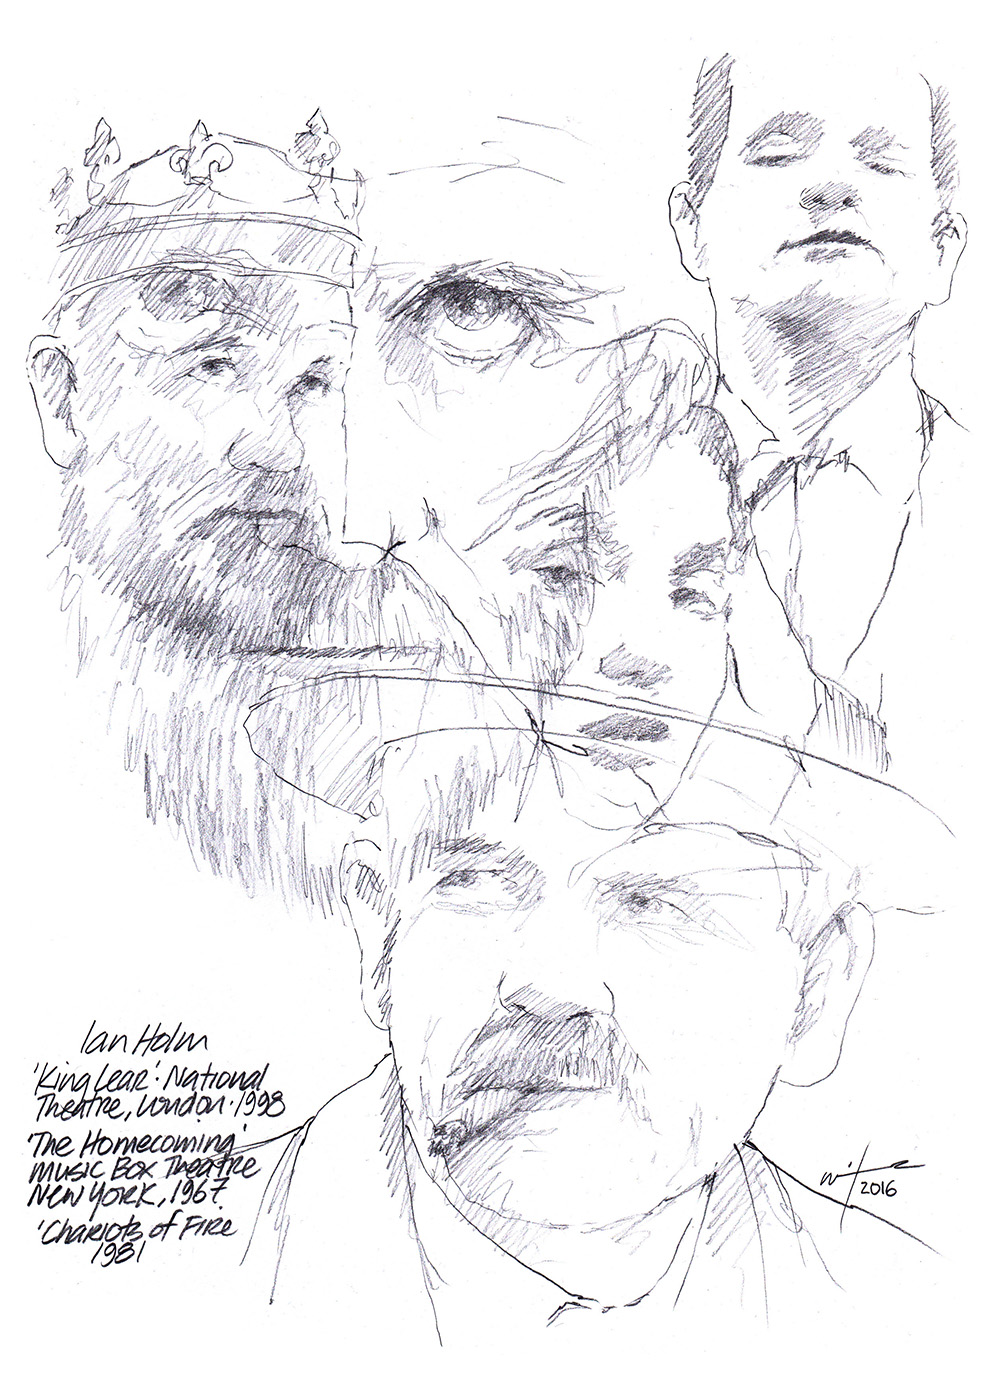 Montage drawing of actor Ian Holm